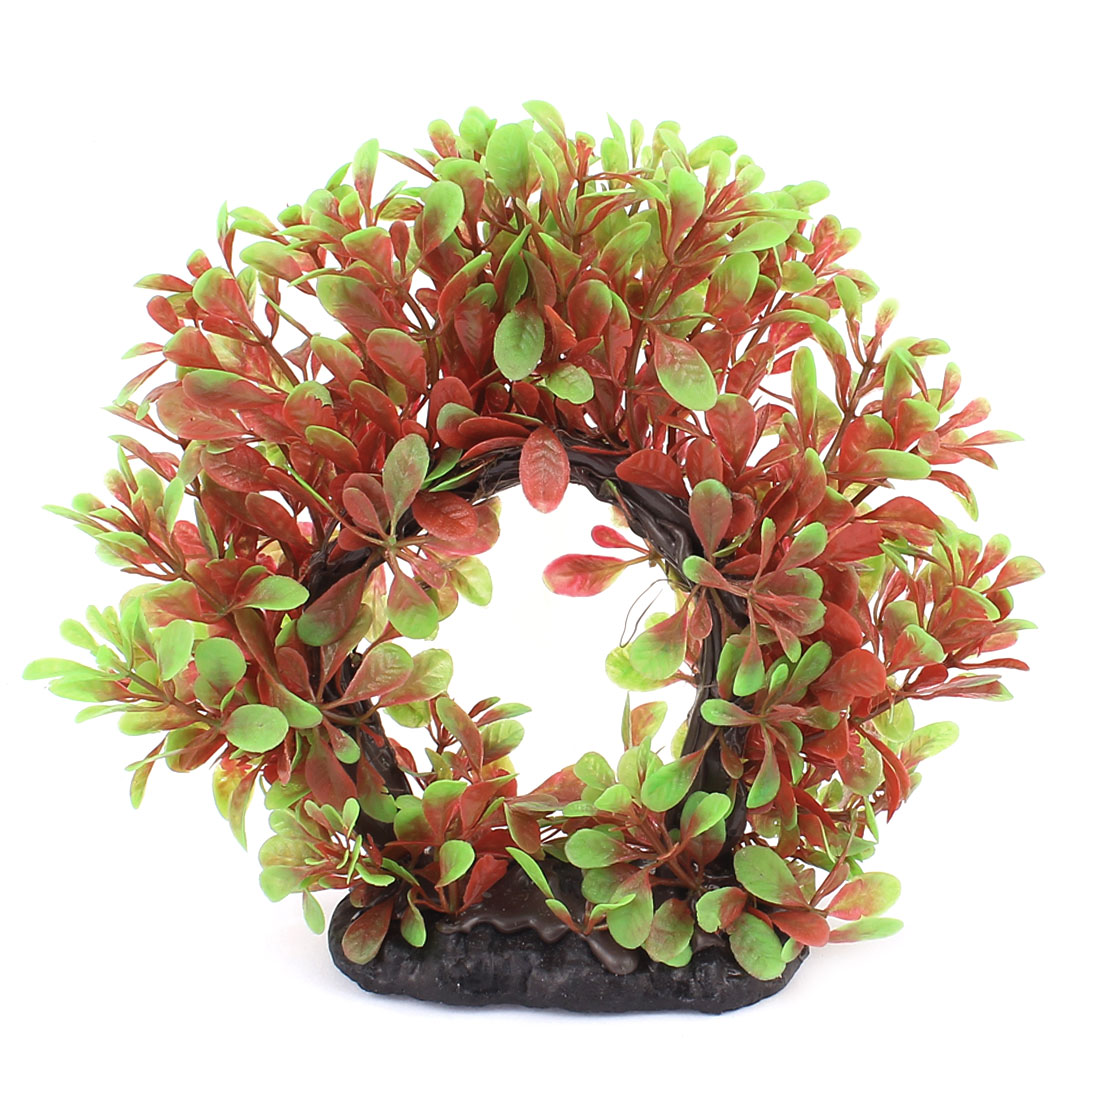 Plastic Leaf Grass Circle Design Aquatic Plant Fish Tank Aquarium Decoration